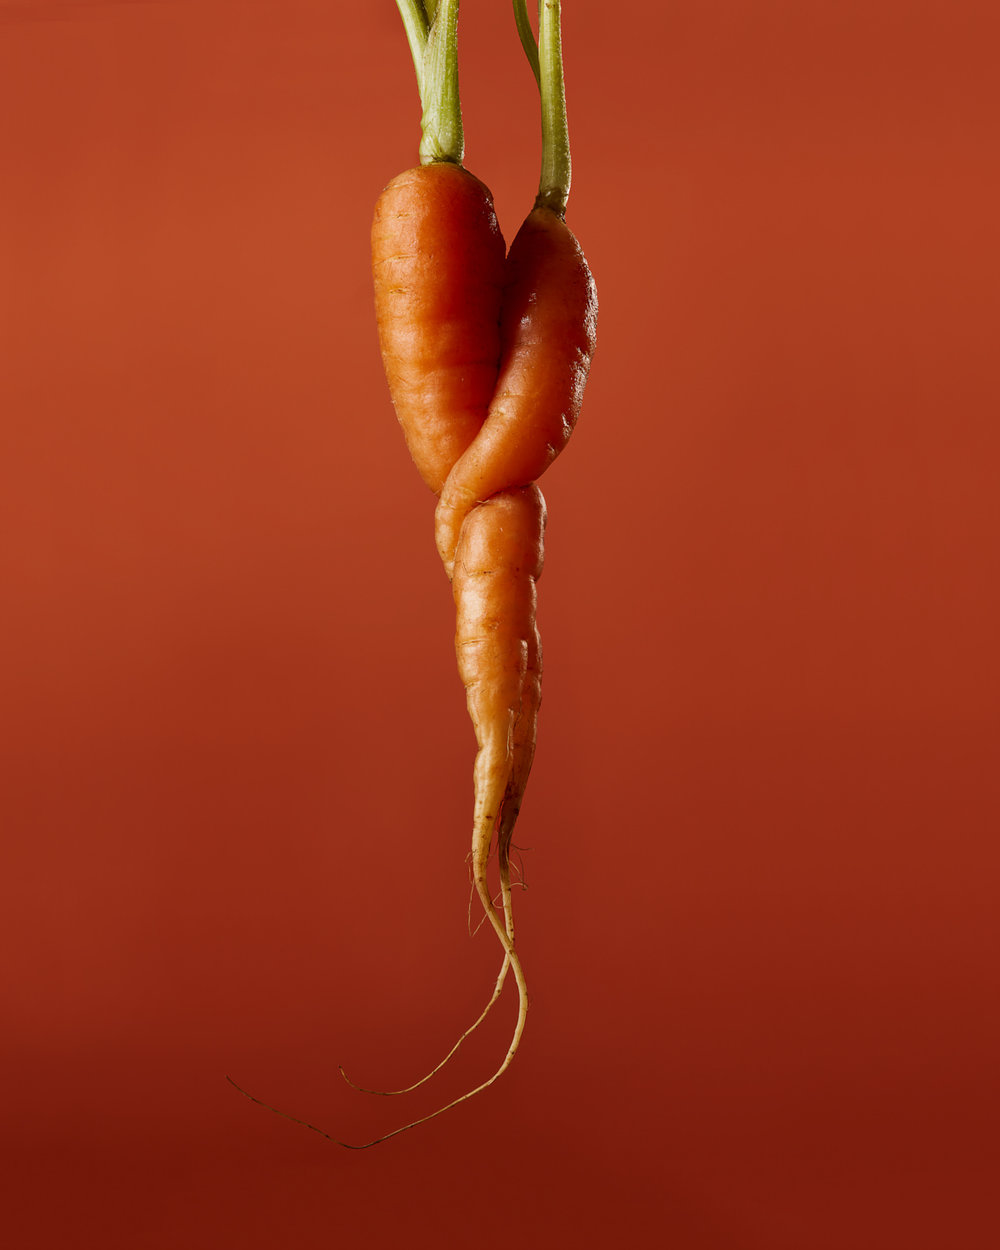 Carrot Food Stylist Judy Kim Photographer Josh Dickinson